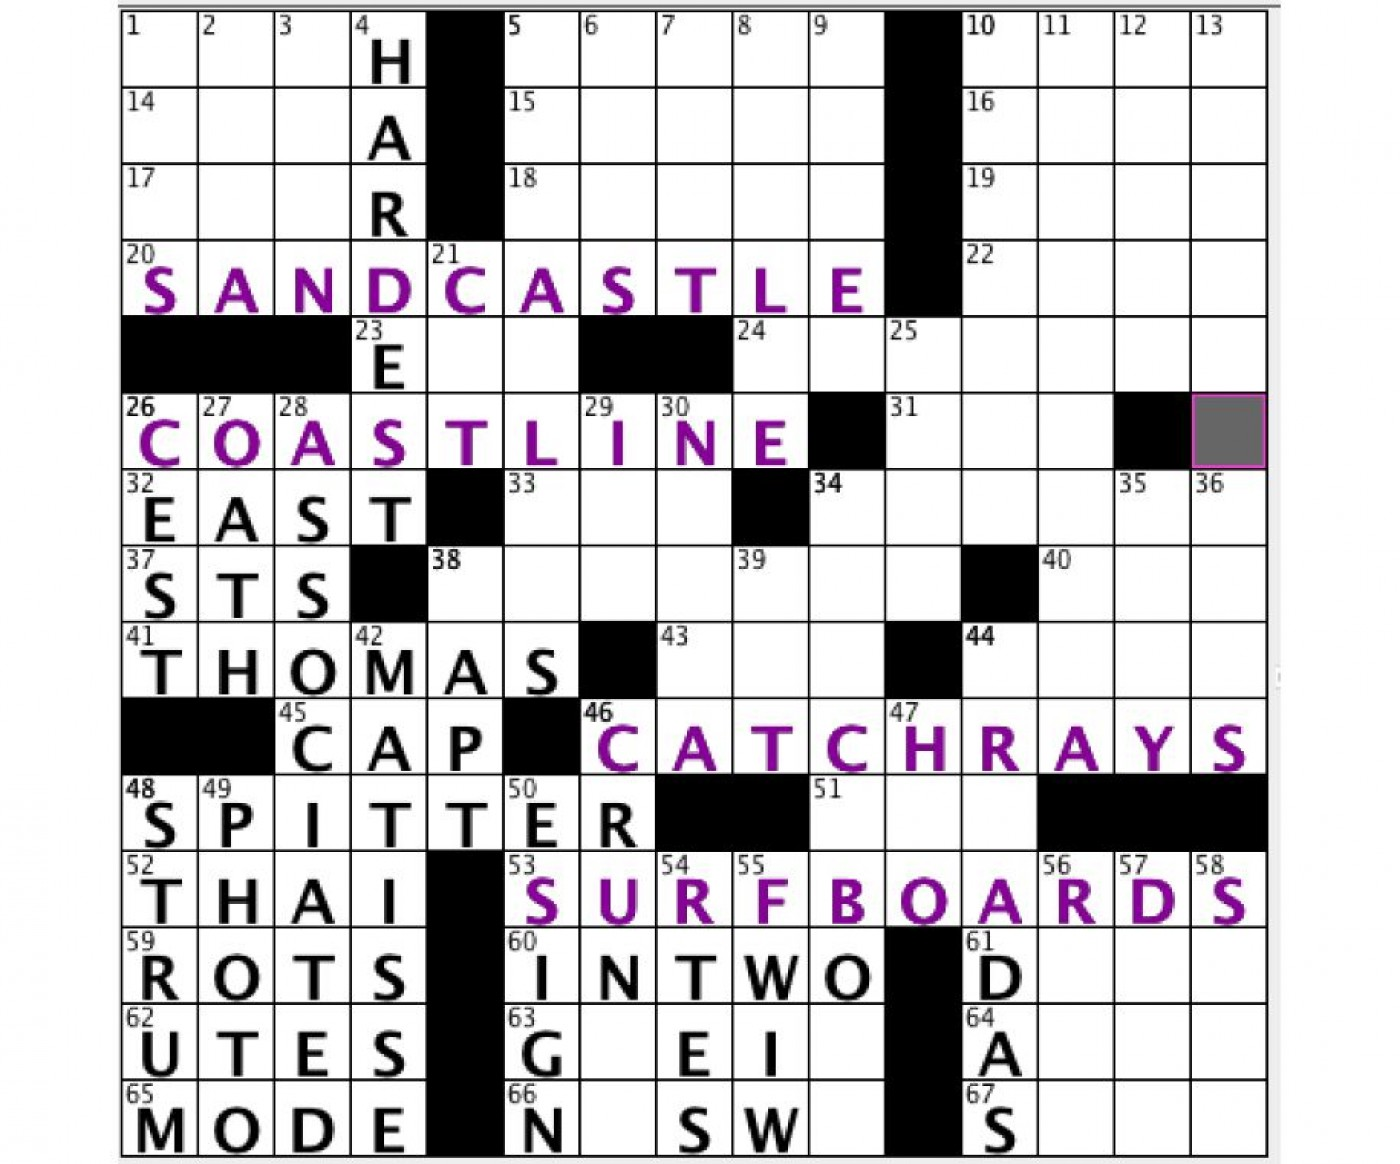 000 Unforgettable Robust Crossword Clue Sample  Strong Effect 6 Letter Very Dan Word1400